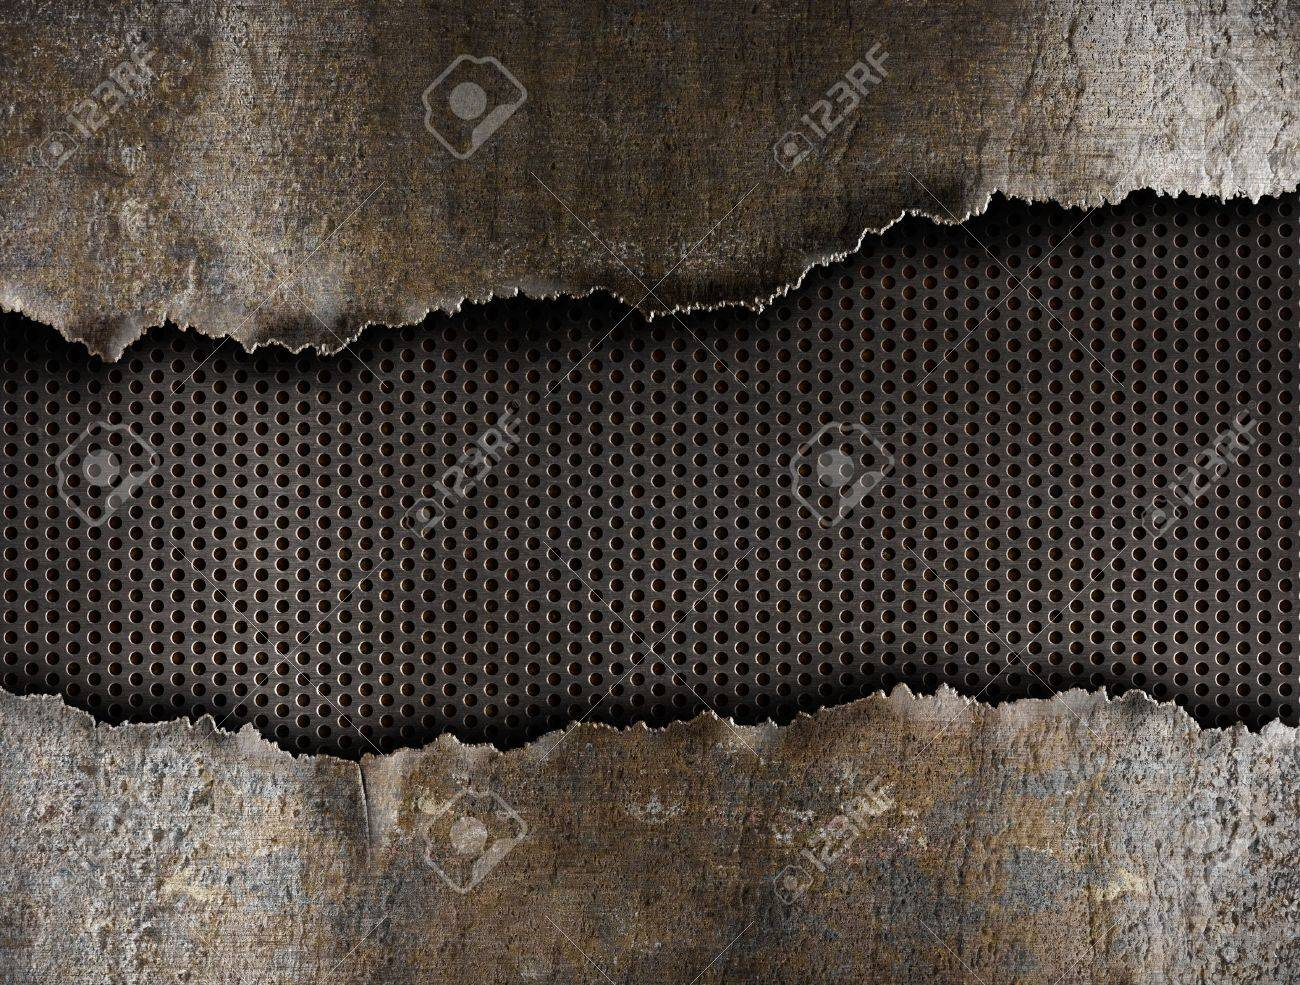 metal ripped hole background Stock Photo - 13814380